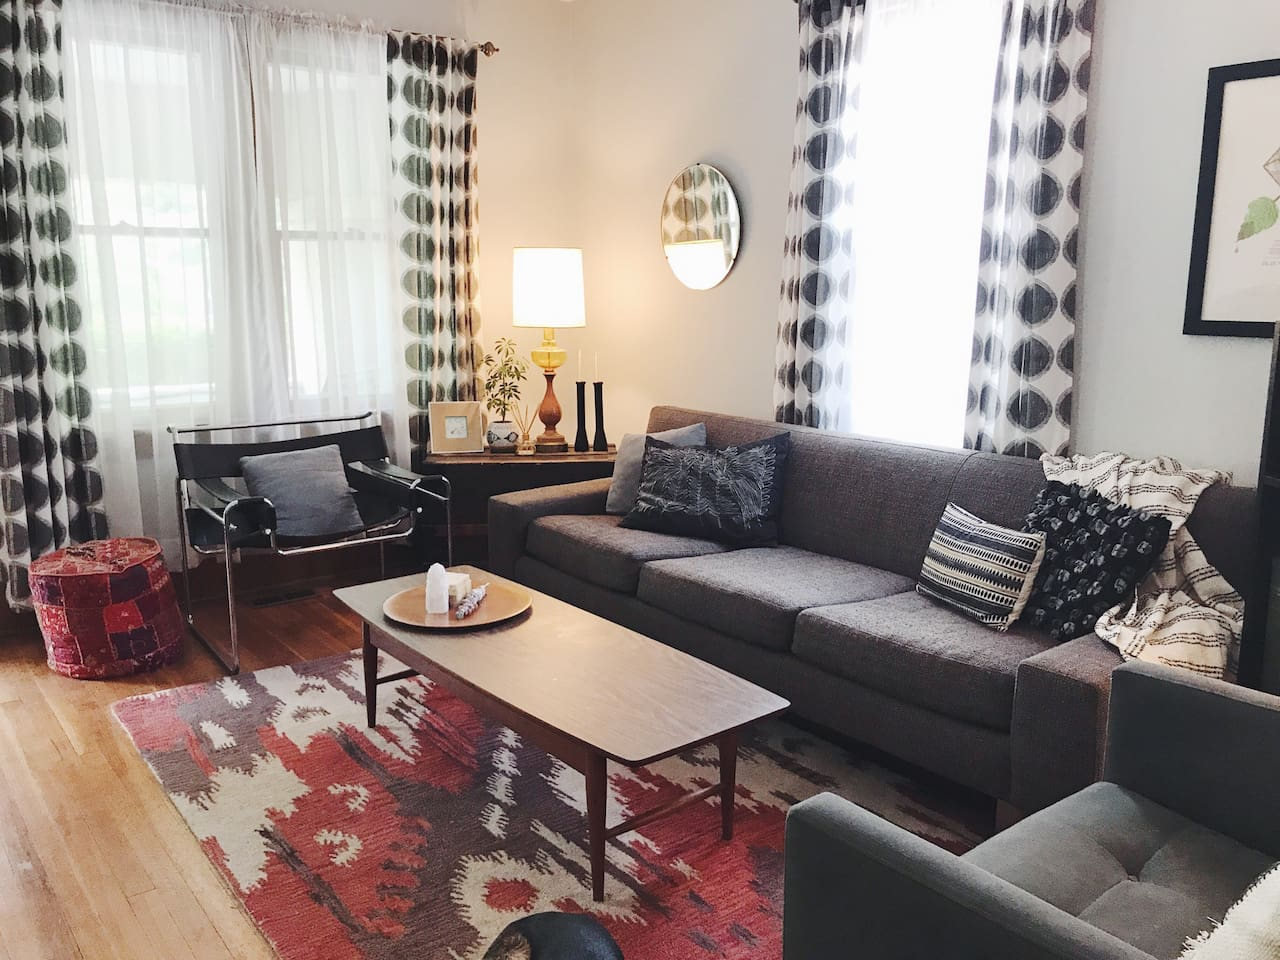 Eclectic mid century and modern furnishing in the living room make for a relaxing sitting and TV-watching space.